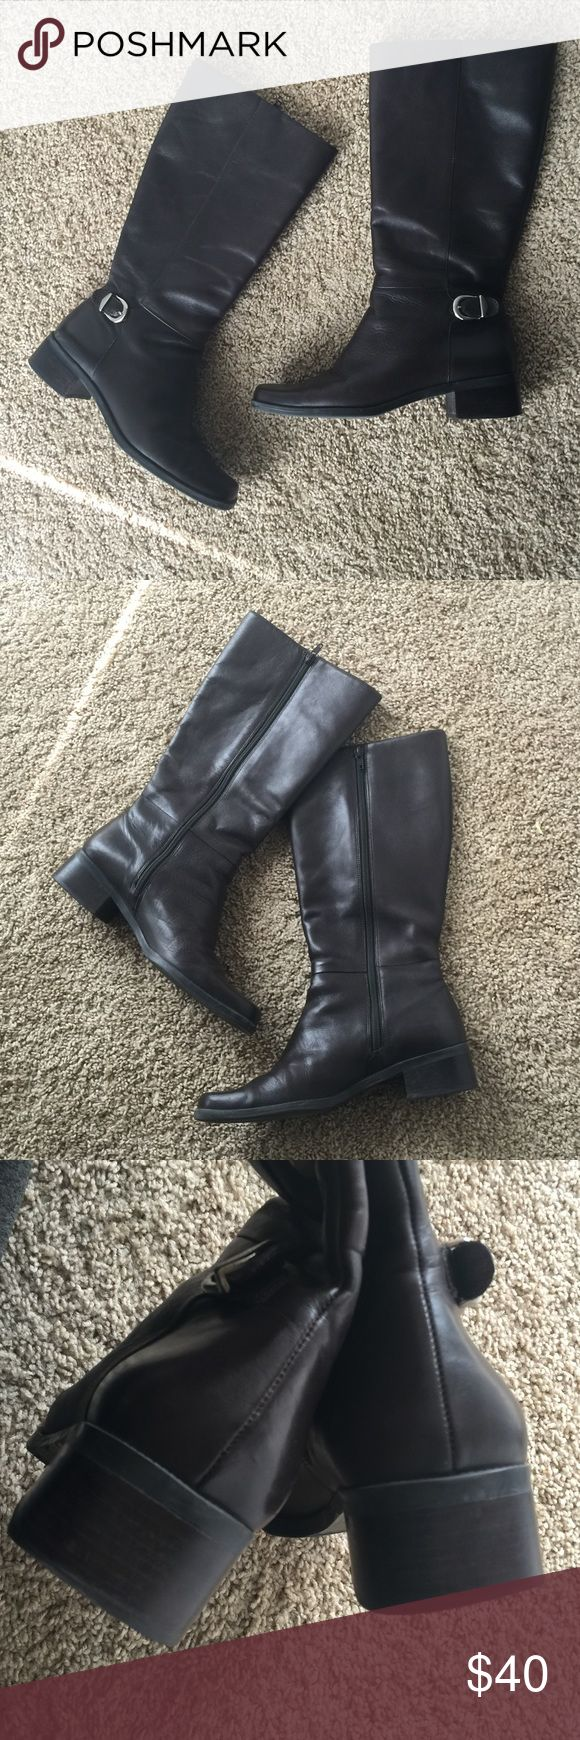 Naturalizer Leather Riding Boots Dark brown boots with zipper closure. Some visible wear on toes in 4th picture. Naturalizer Shoes